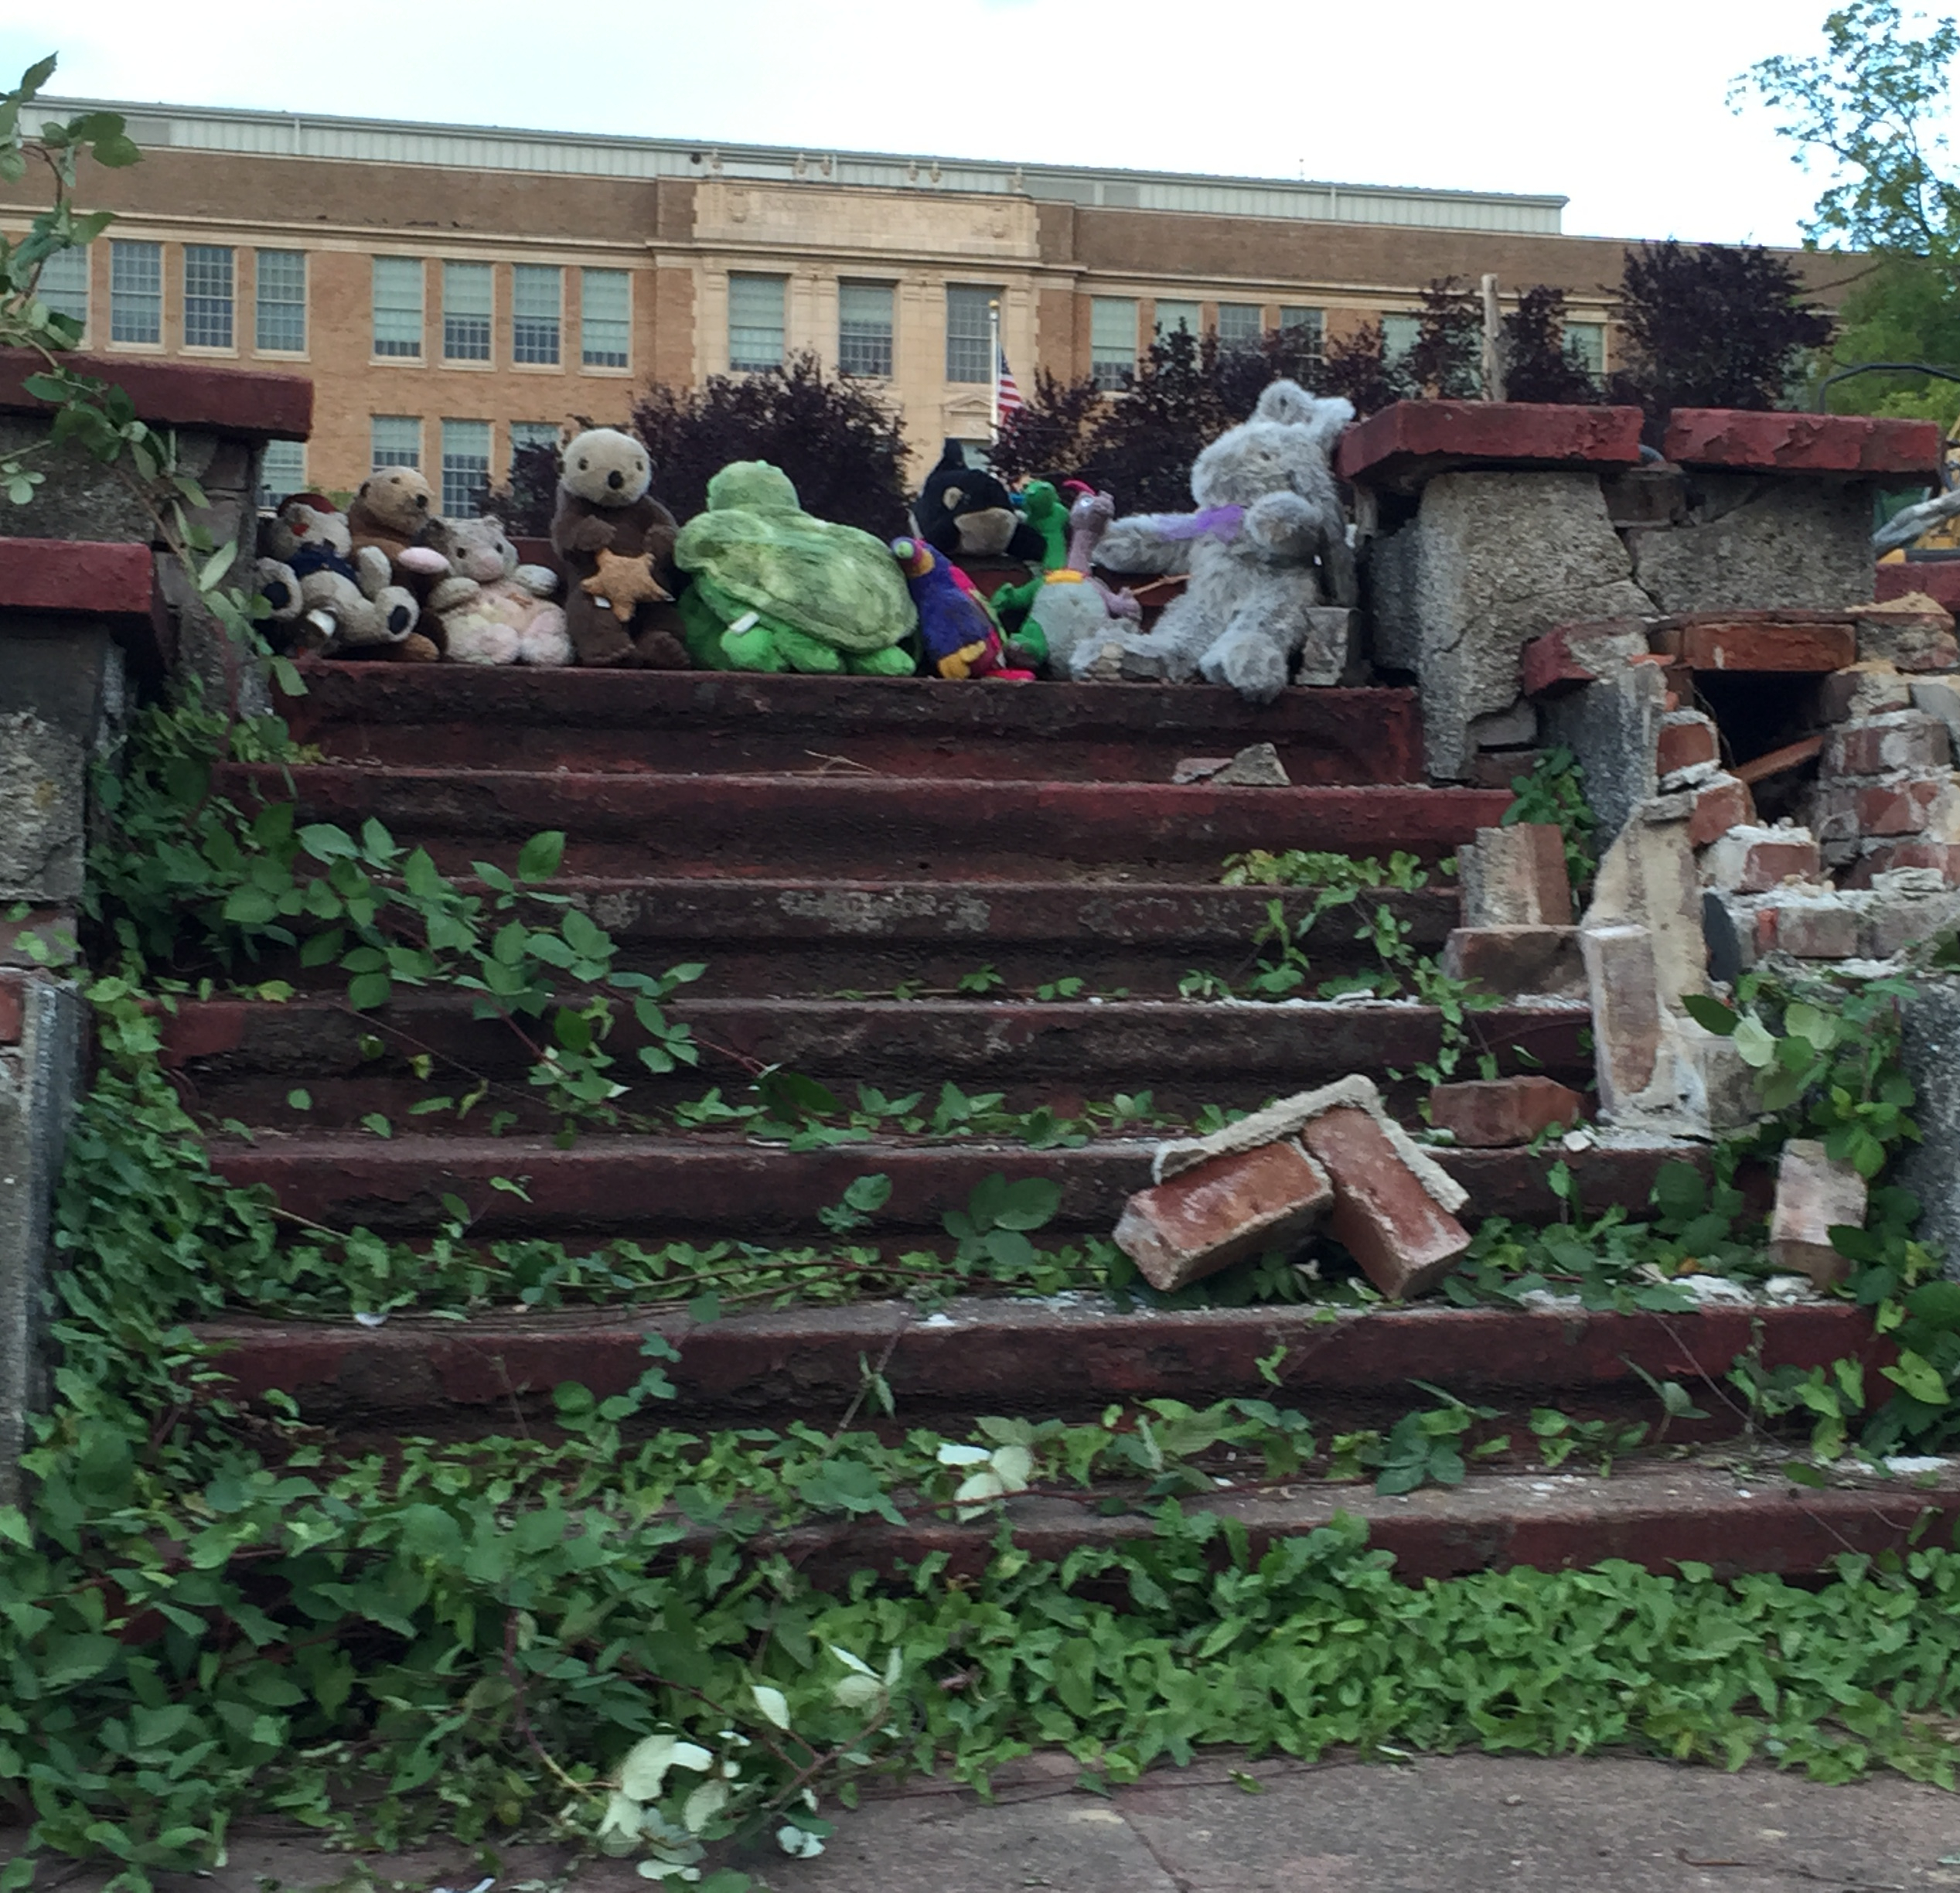 Ruins of building stairs with stuffed animals.